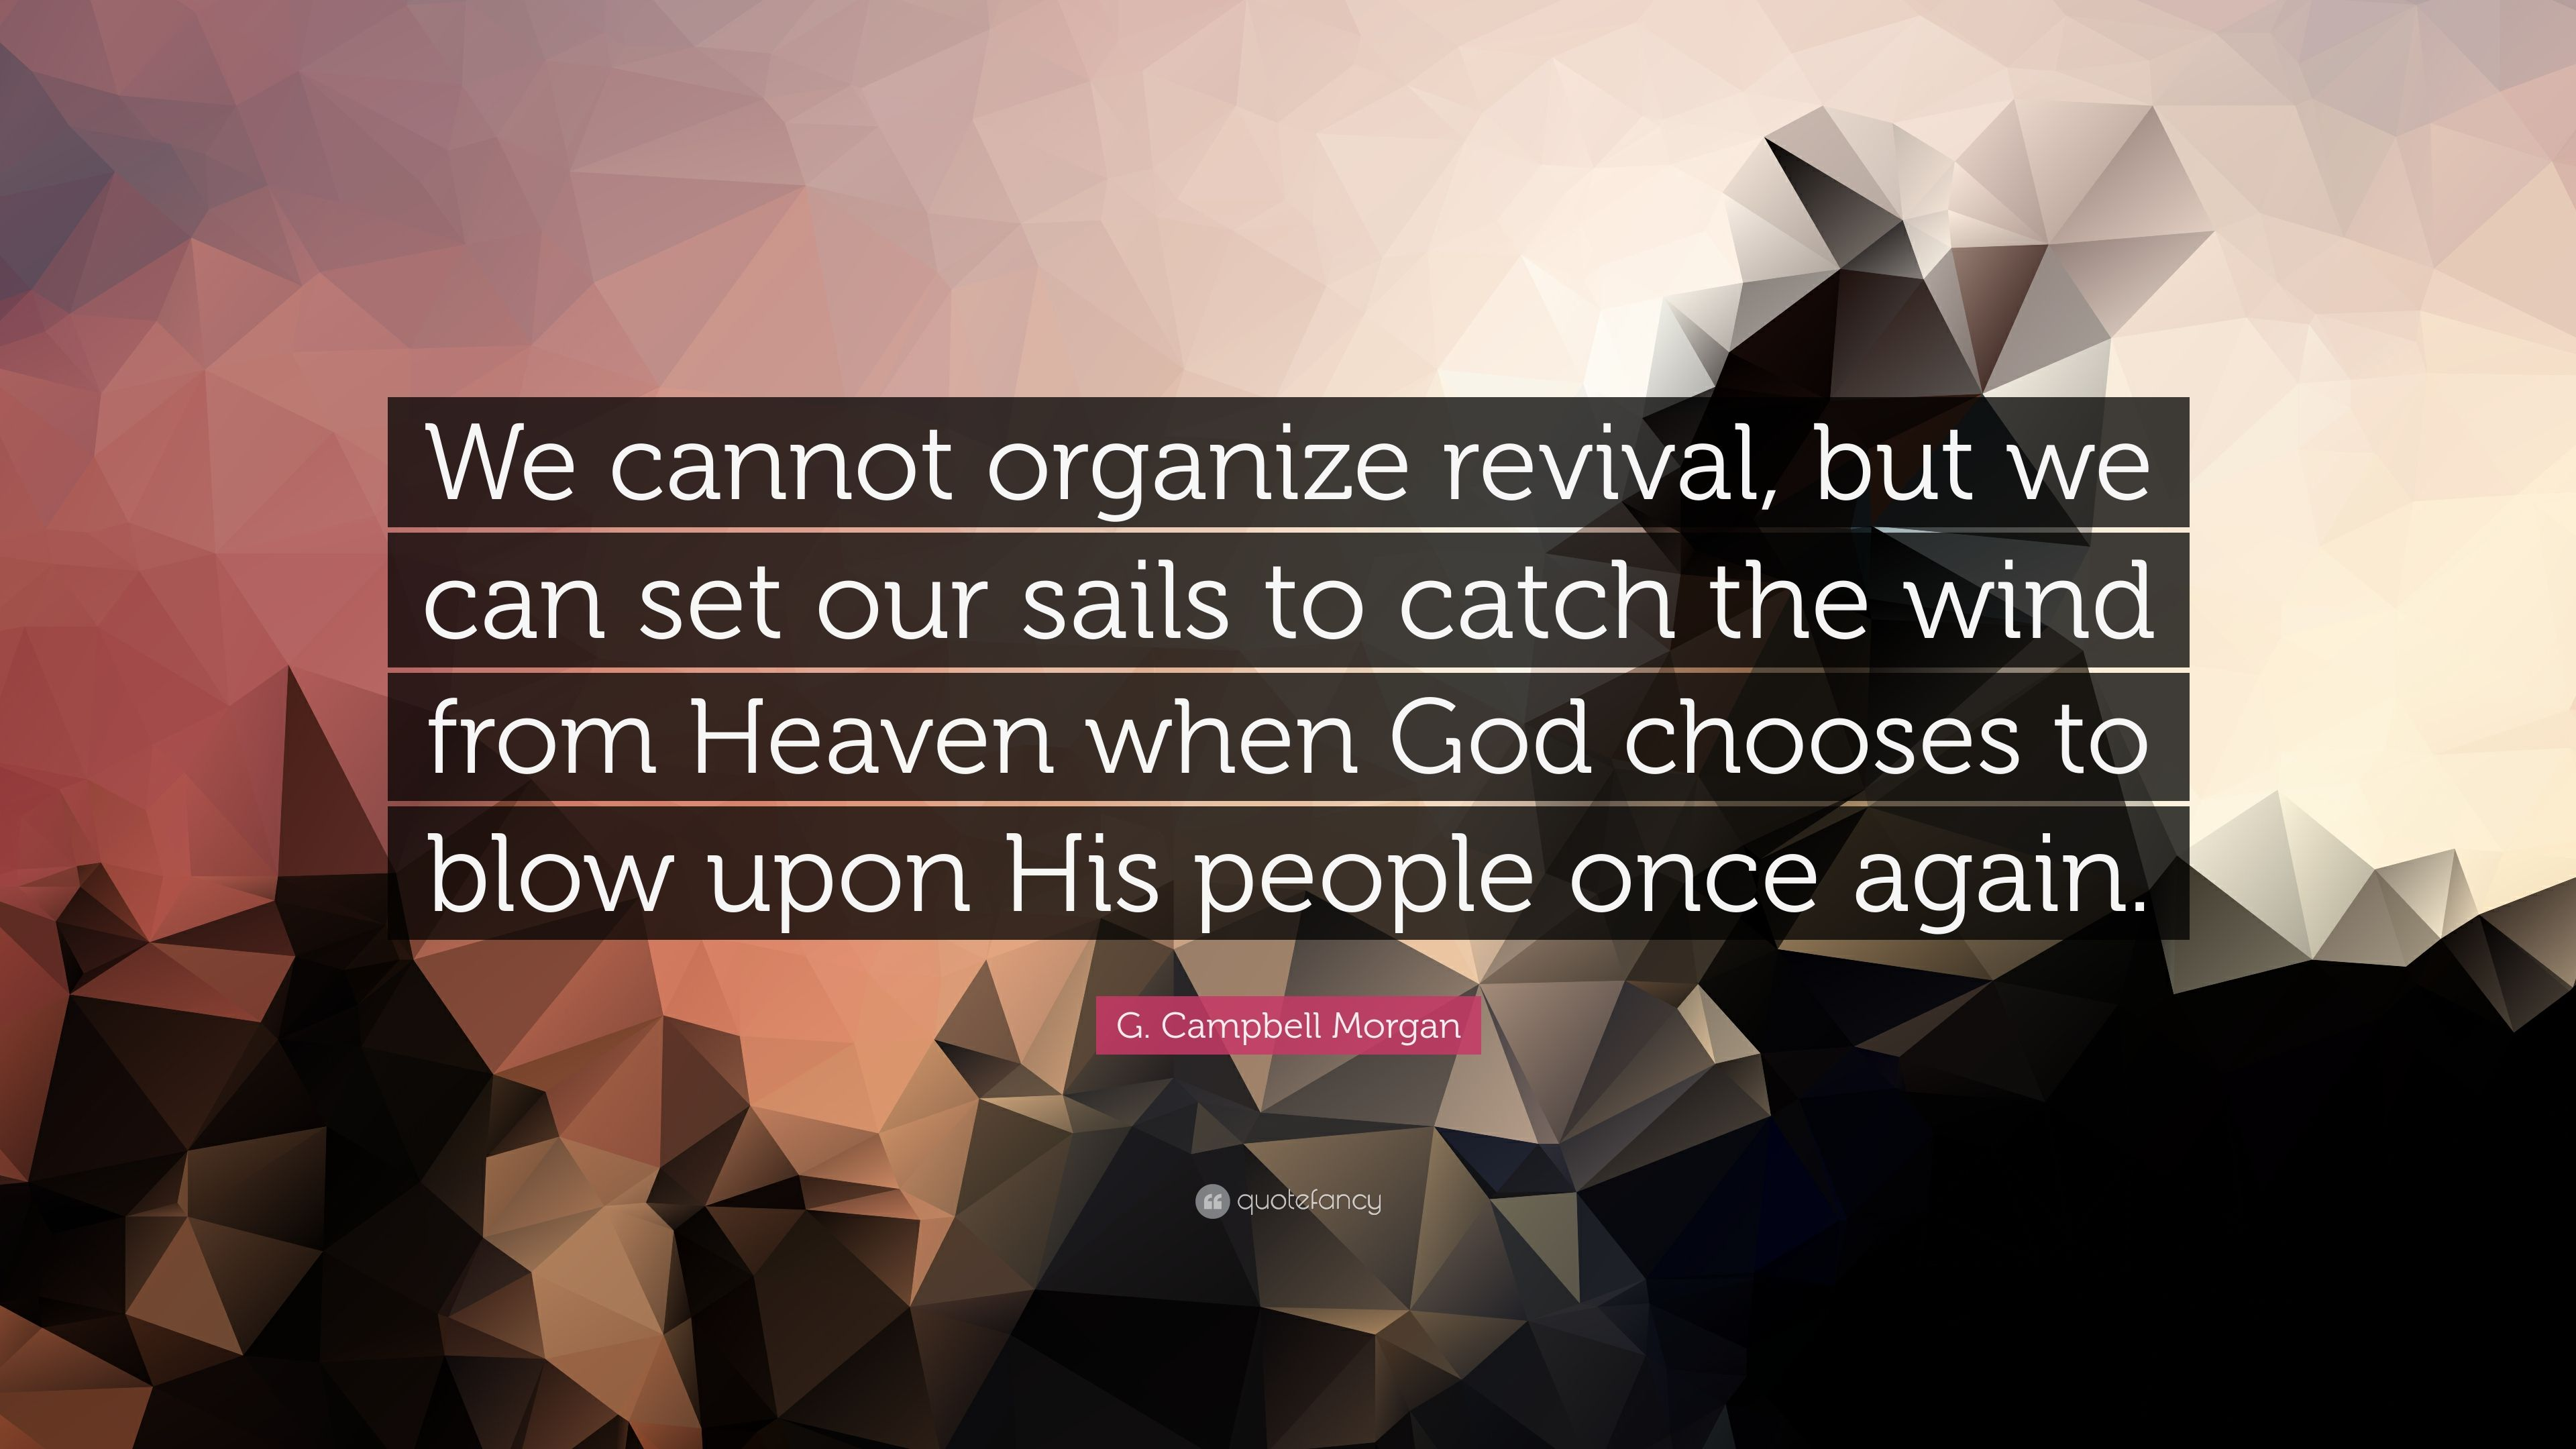 G campbell morgan quote we cannot organize revival but we can set